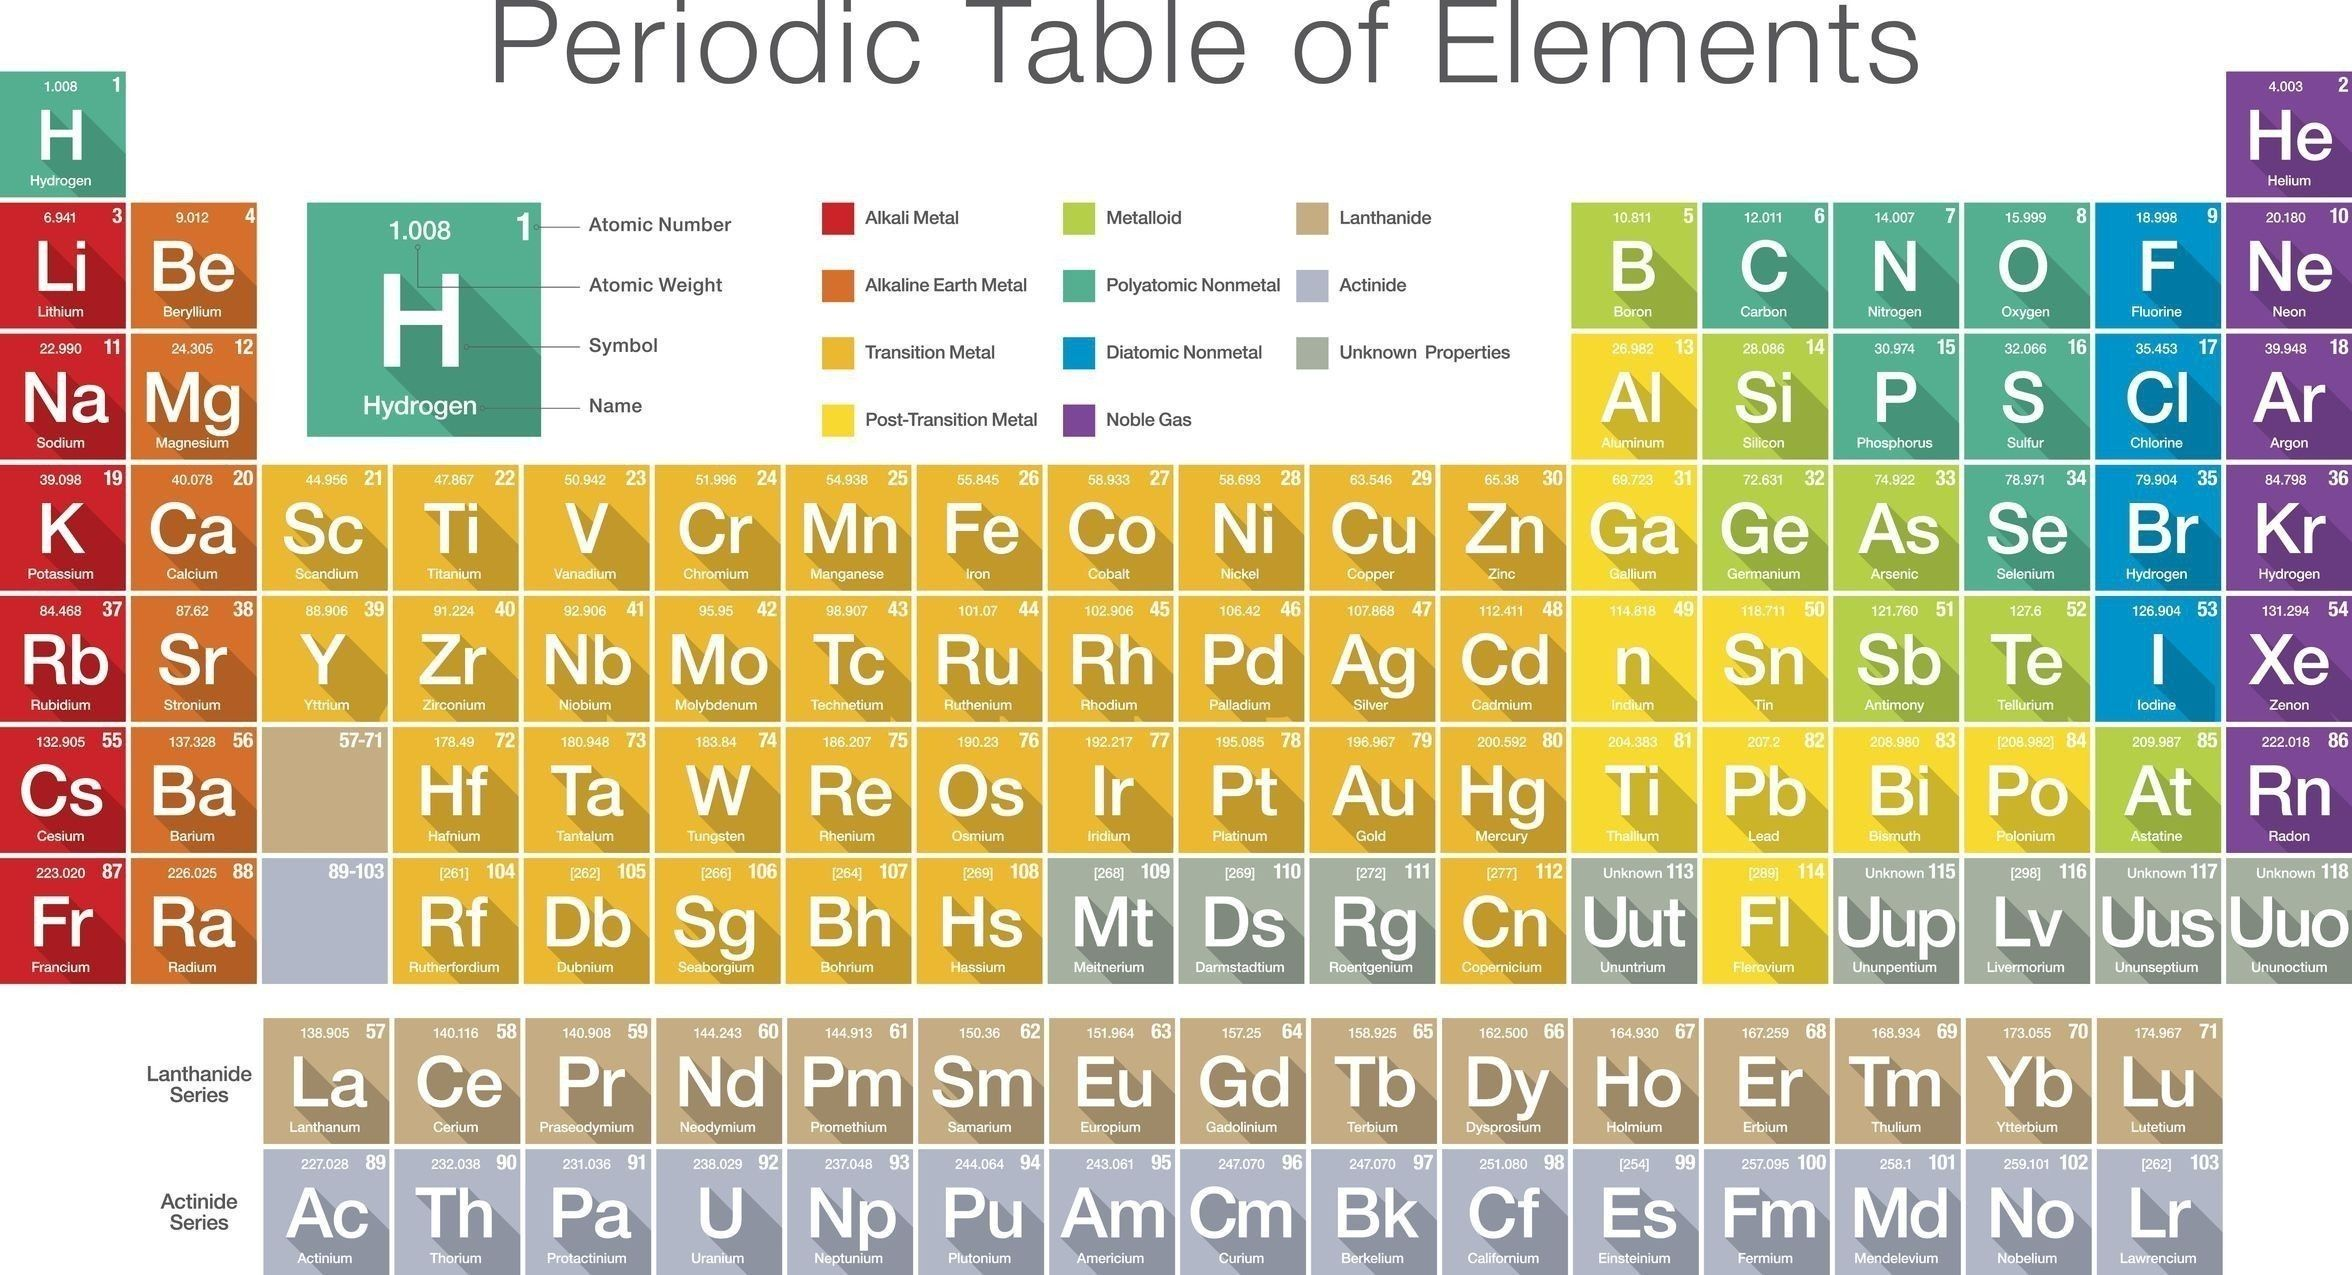 Periodic Table Labeled Families Popular Groups Elements